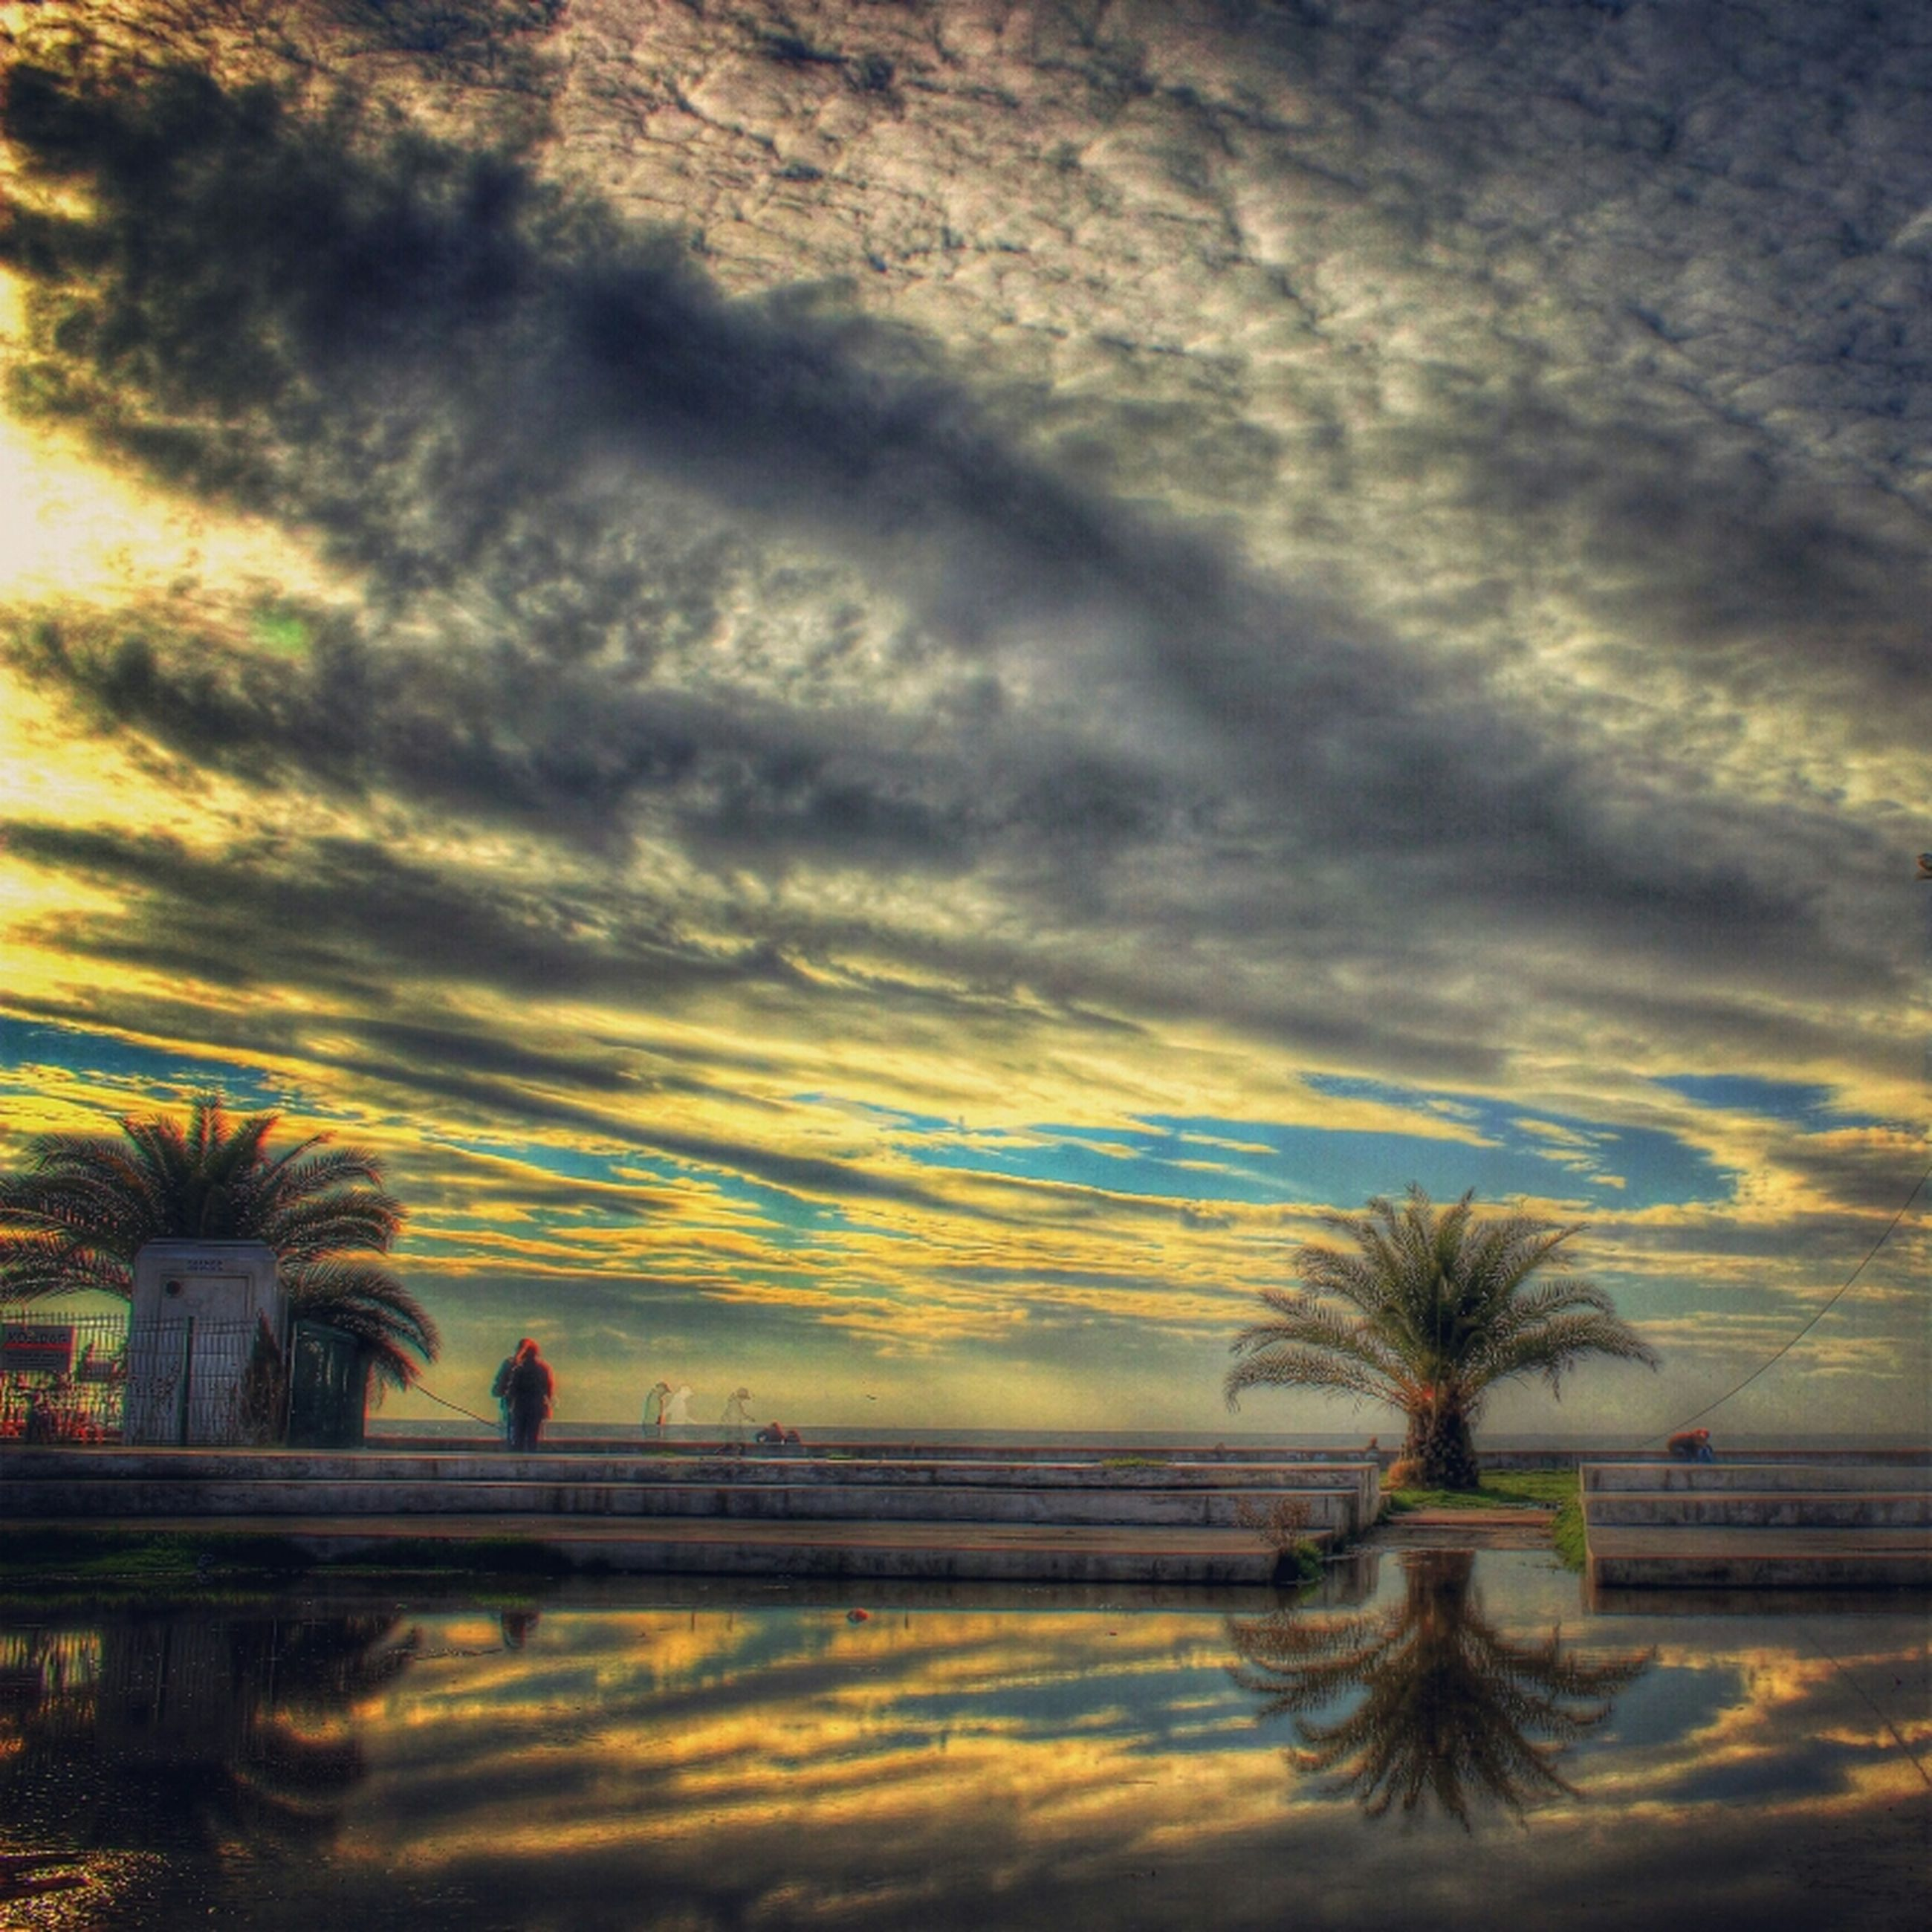 sky, sunset, tranquil scene, tranquility, water, scenics, cloud - sky, beauty in nature, palm tree, nature, tree, cloudy, sea, silhouette, idyllic, horizon over water, cloud, beach, weather, dramatic sky